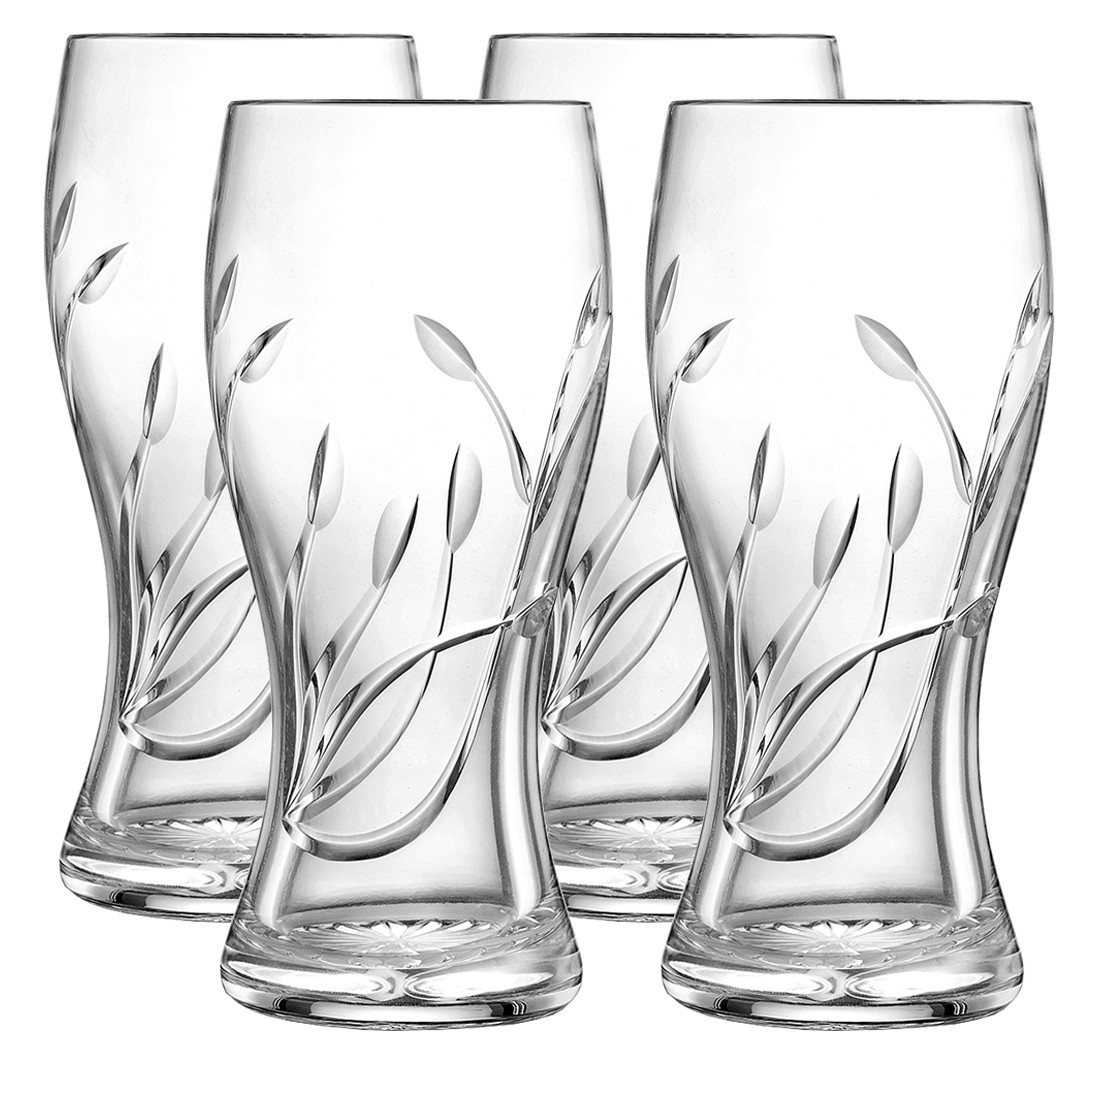 1100x1100 Set Of Four Beer Glasses